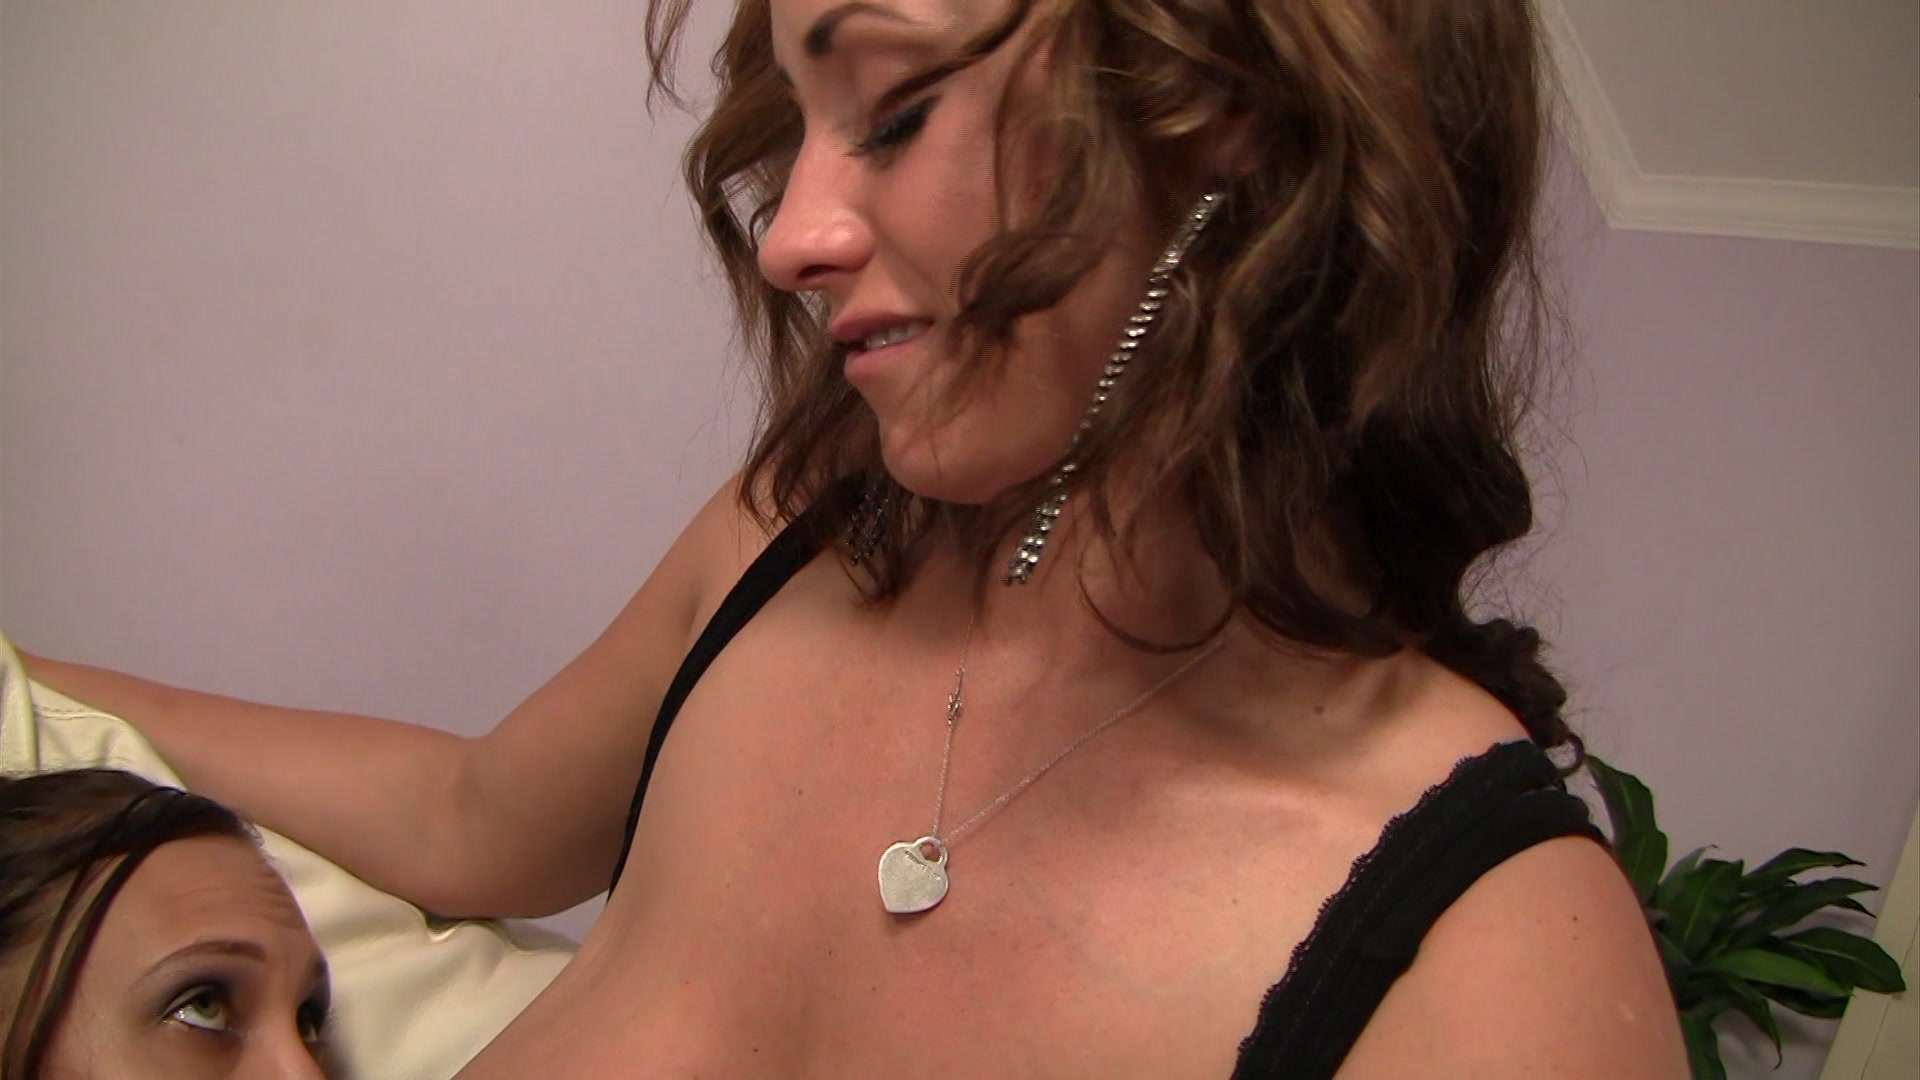 Free home amateur sex video